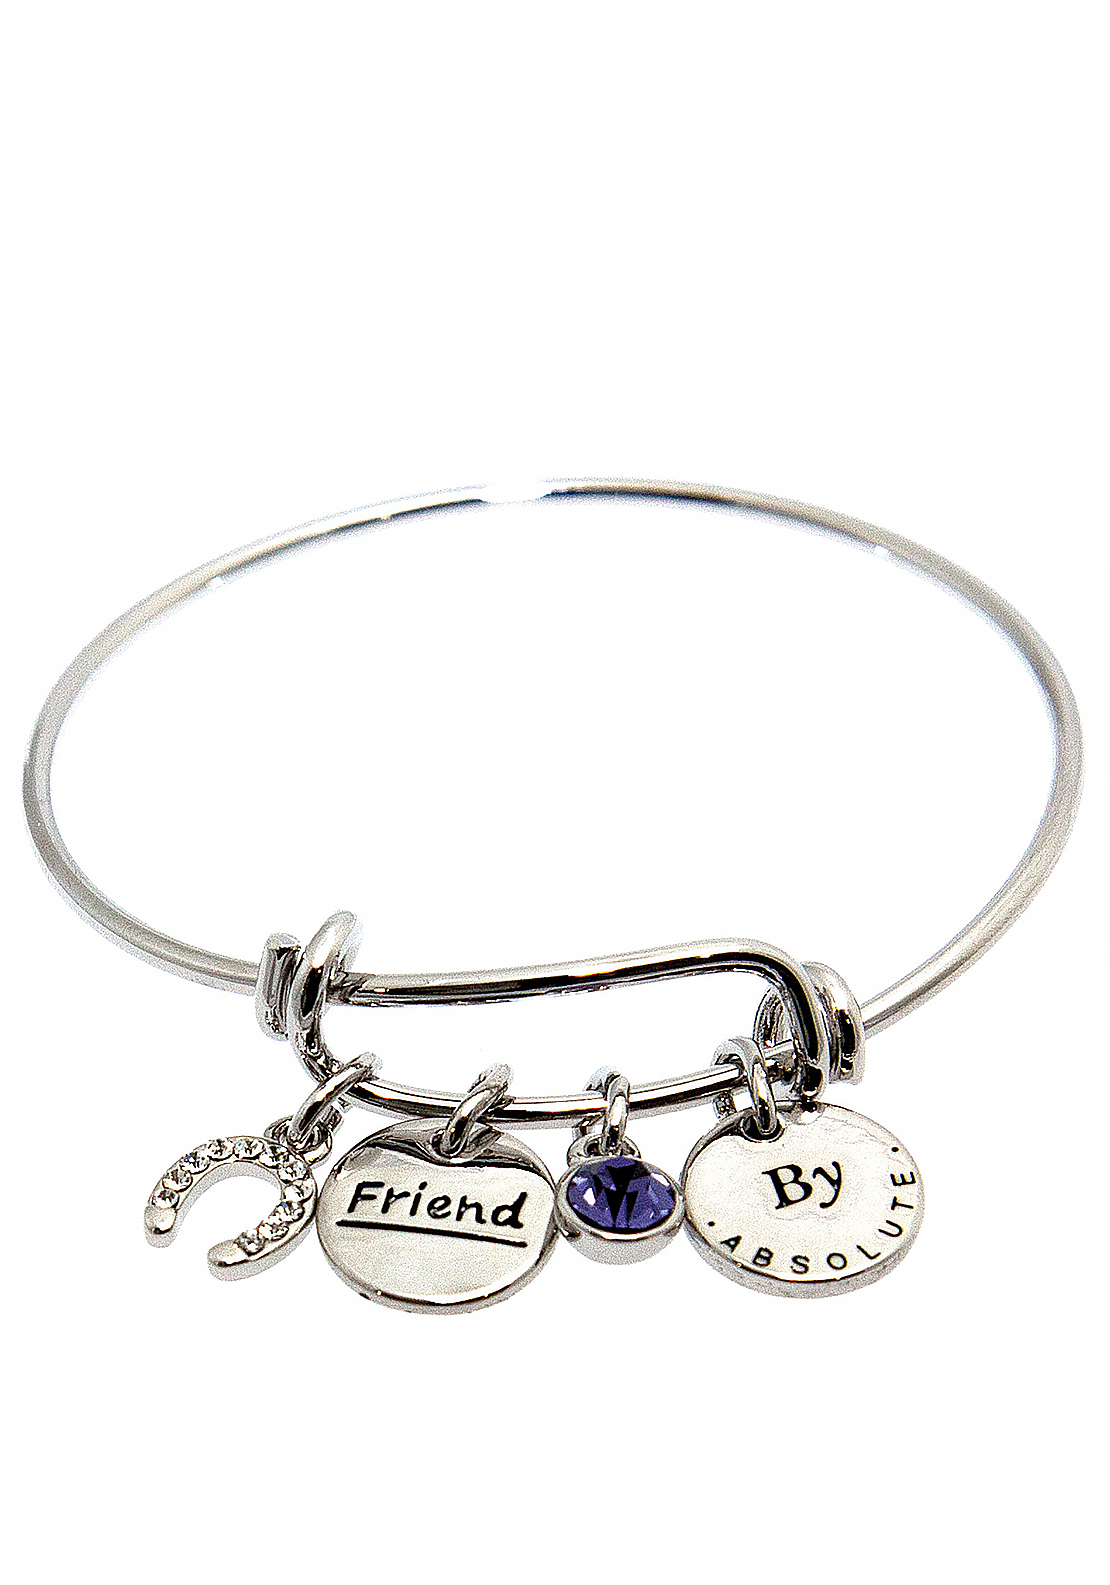 Absolute Jewellery Girls Friend Charm Bangle, Silver